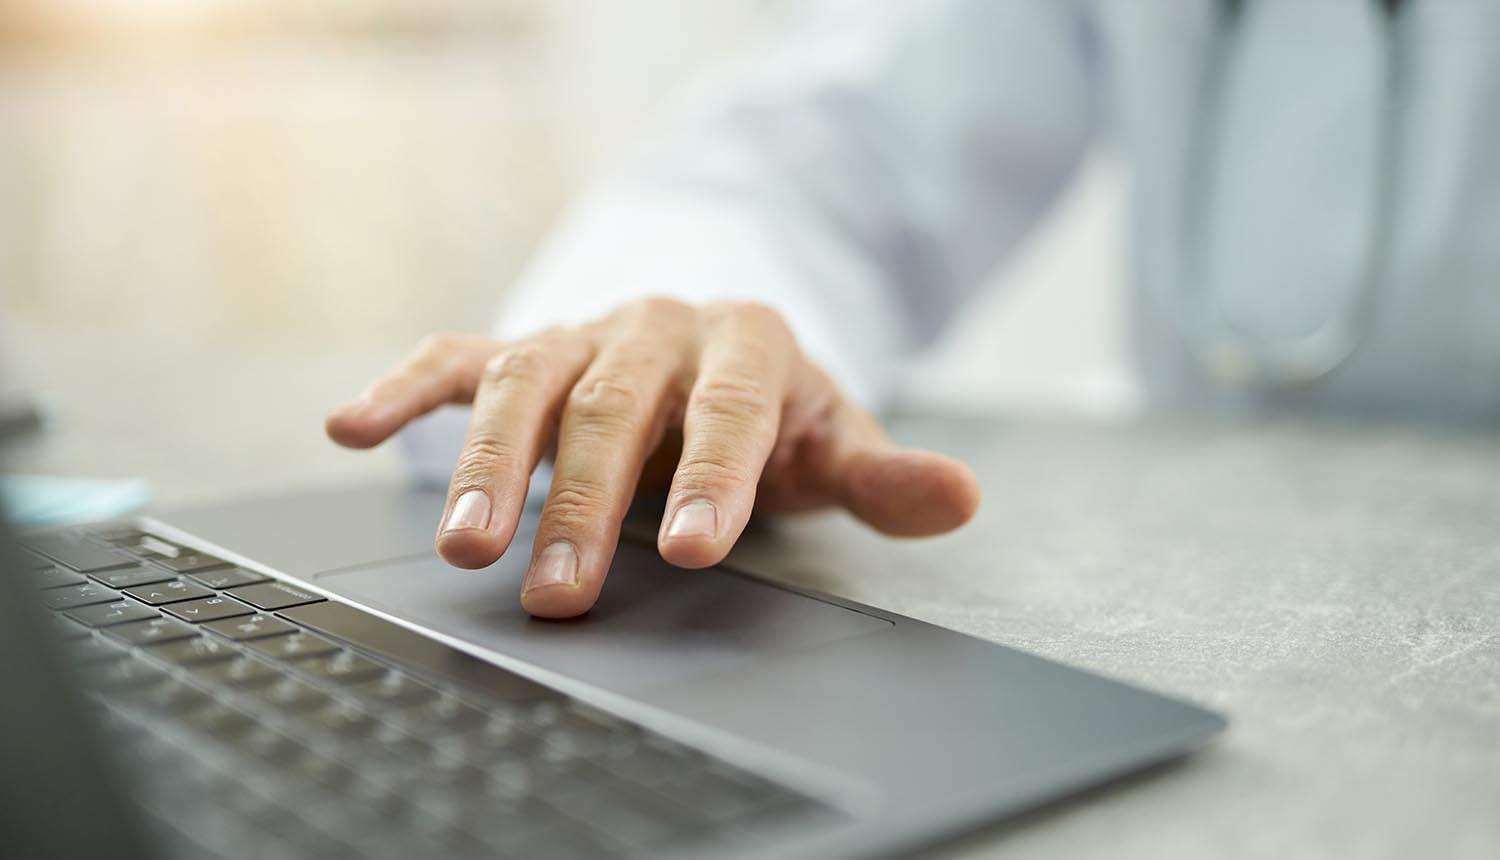 Male doctor hand using modern laptop in clinic showing healthcare organizations need for cyber insurance against ransomware